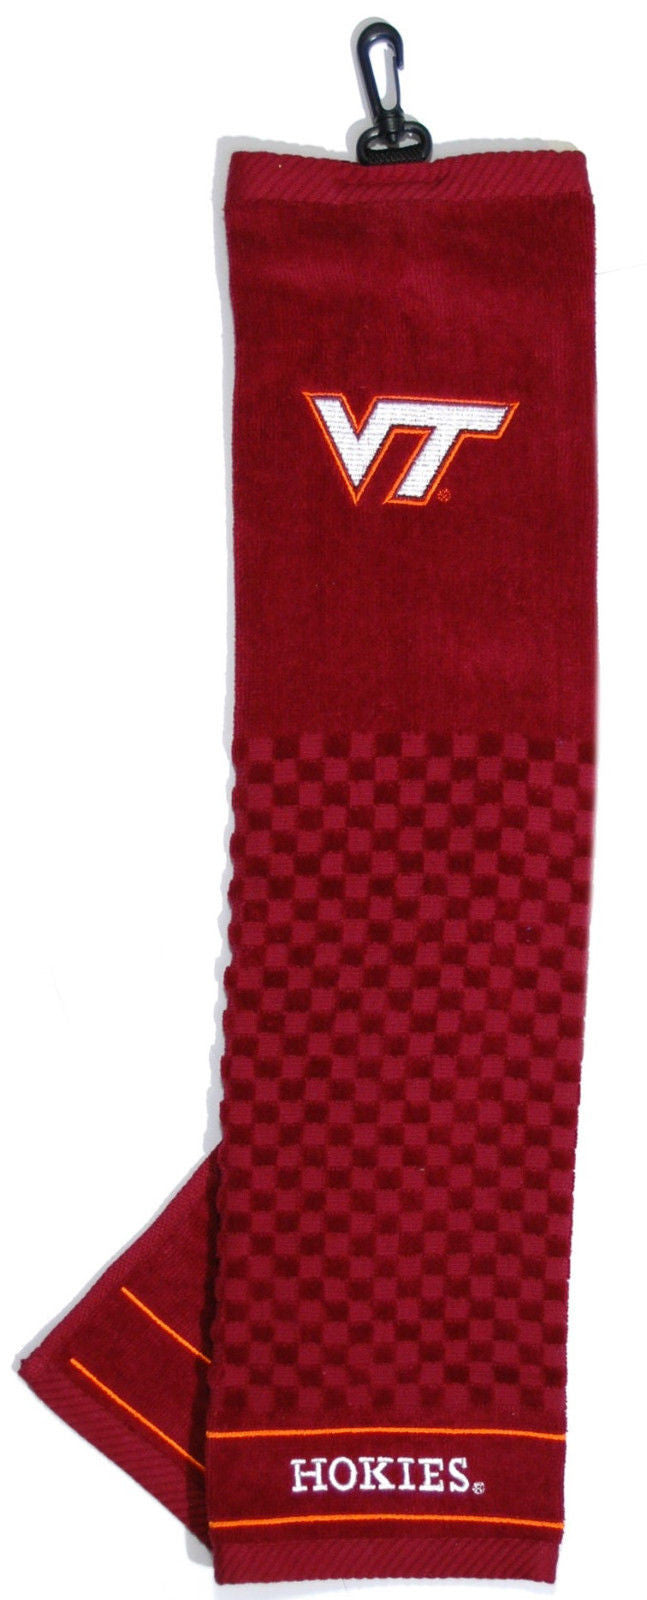 "NCAA Virginia Tech Hokies Towel Embroidered Golf 16"" x 22"""